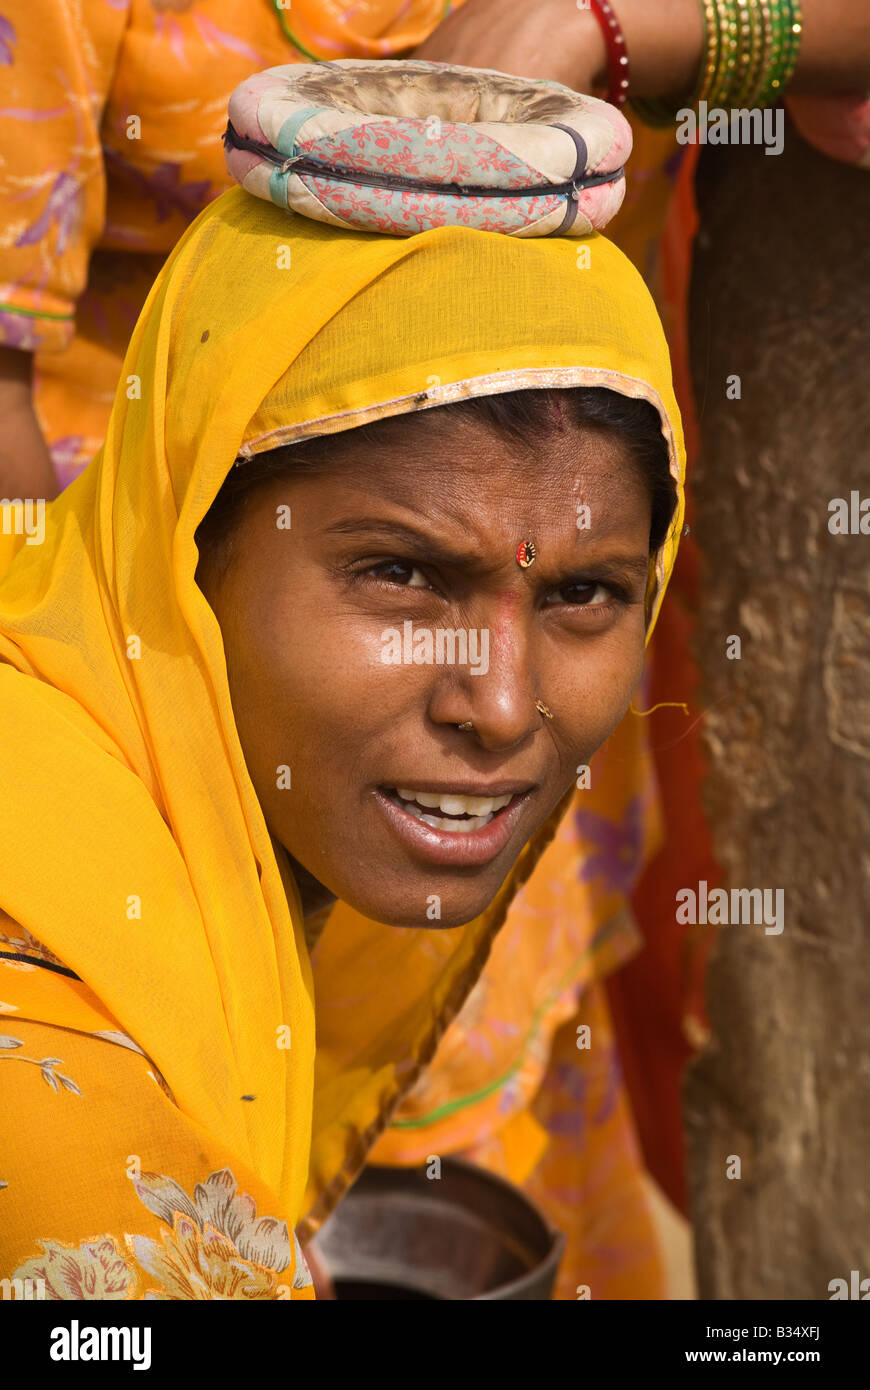 A BANJARI TRIBESWOMAN at the water well in her village in the THAR DESERT near JAISALMER RAJASTHAN INDIA - Stock Image